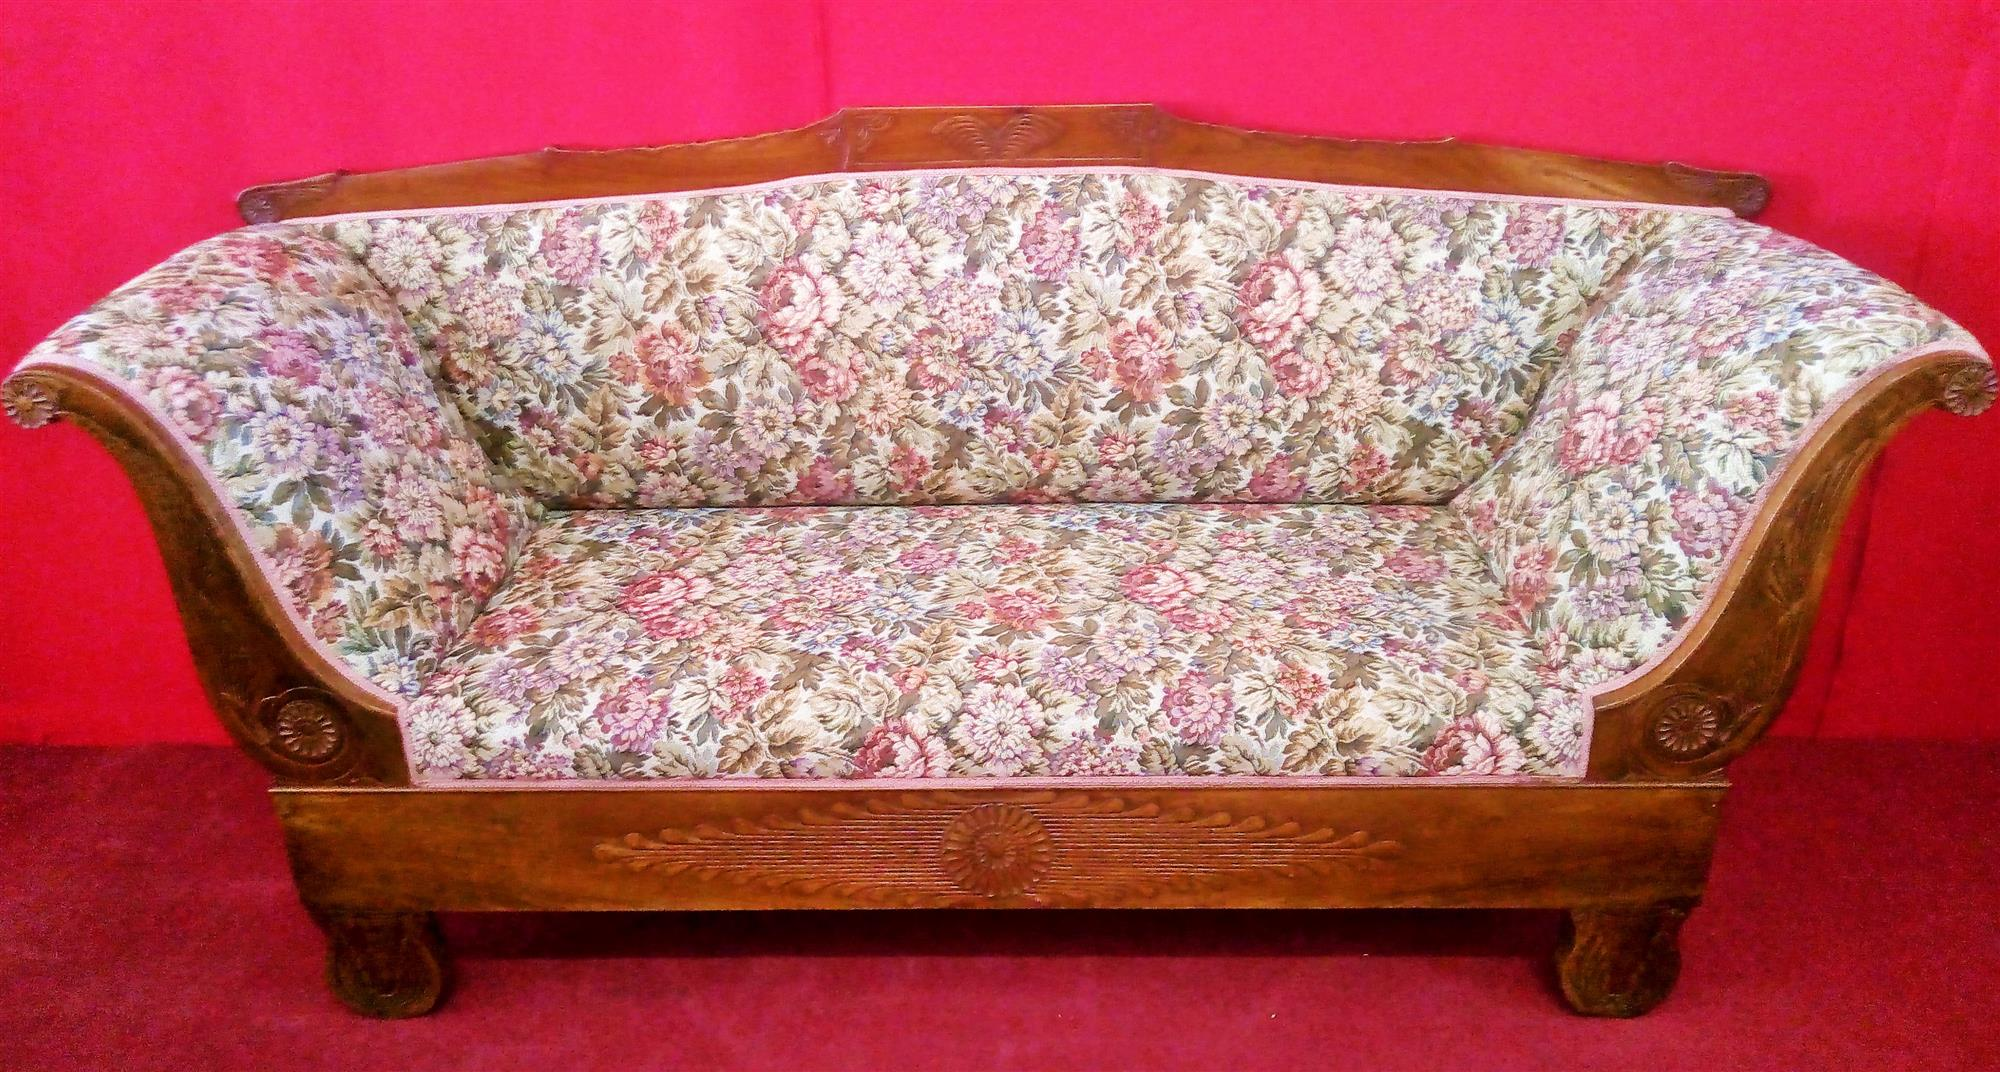 Two-seater sofa, Empire